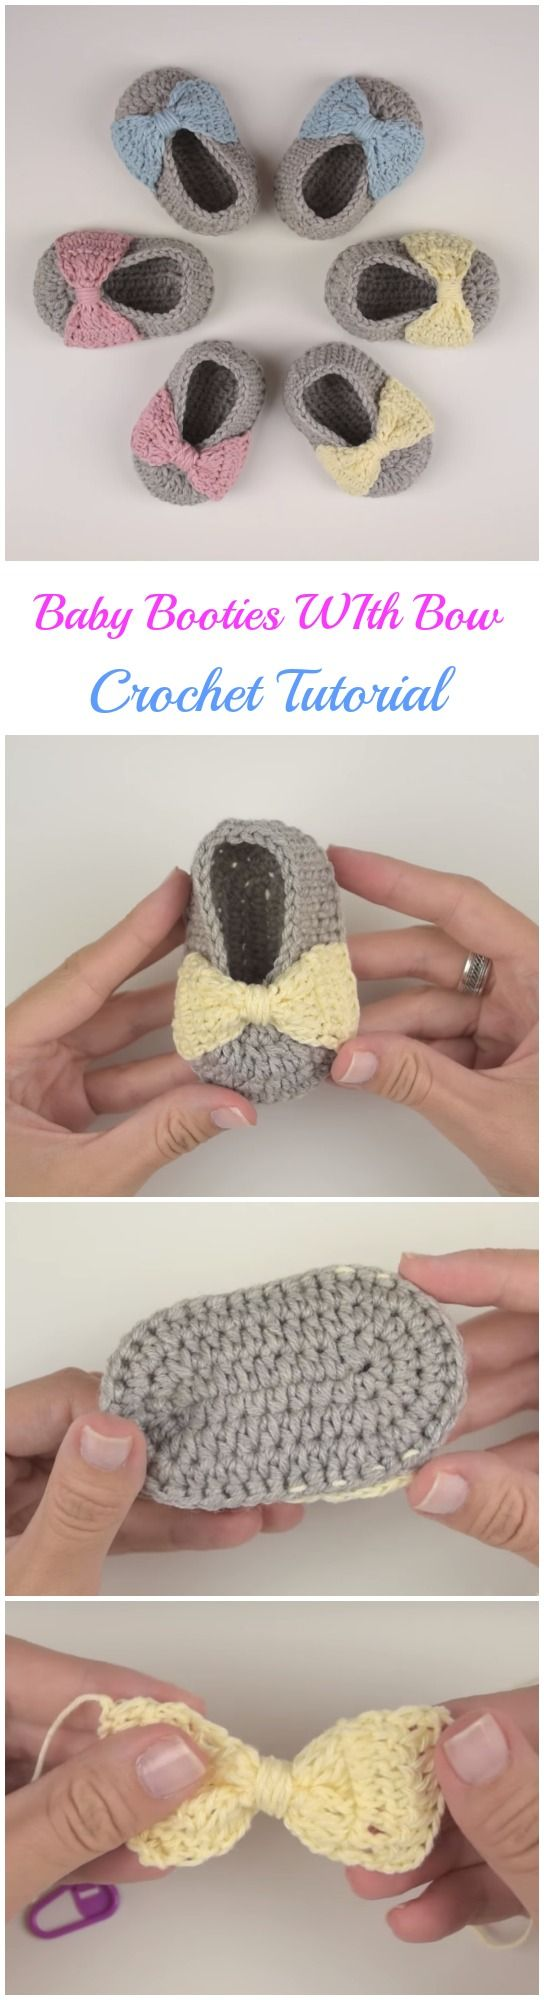 Crochet Baby Booties with Bow